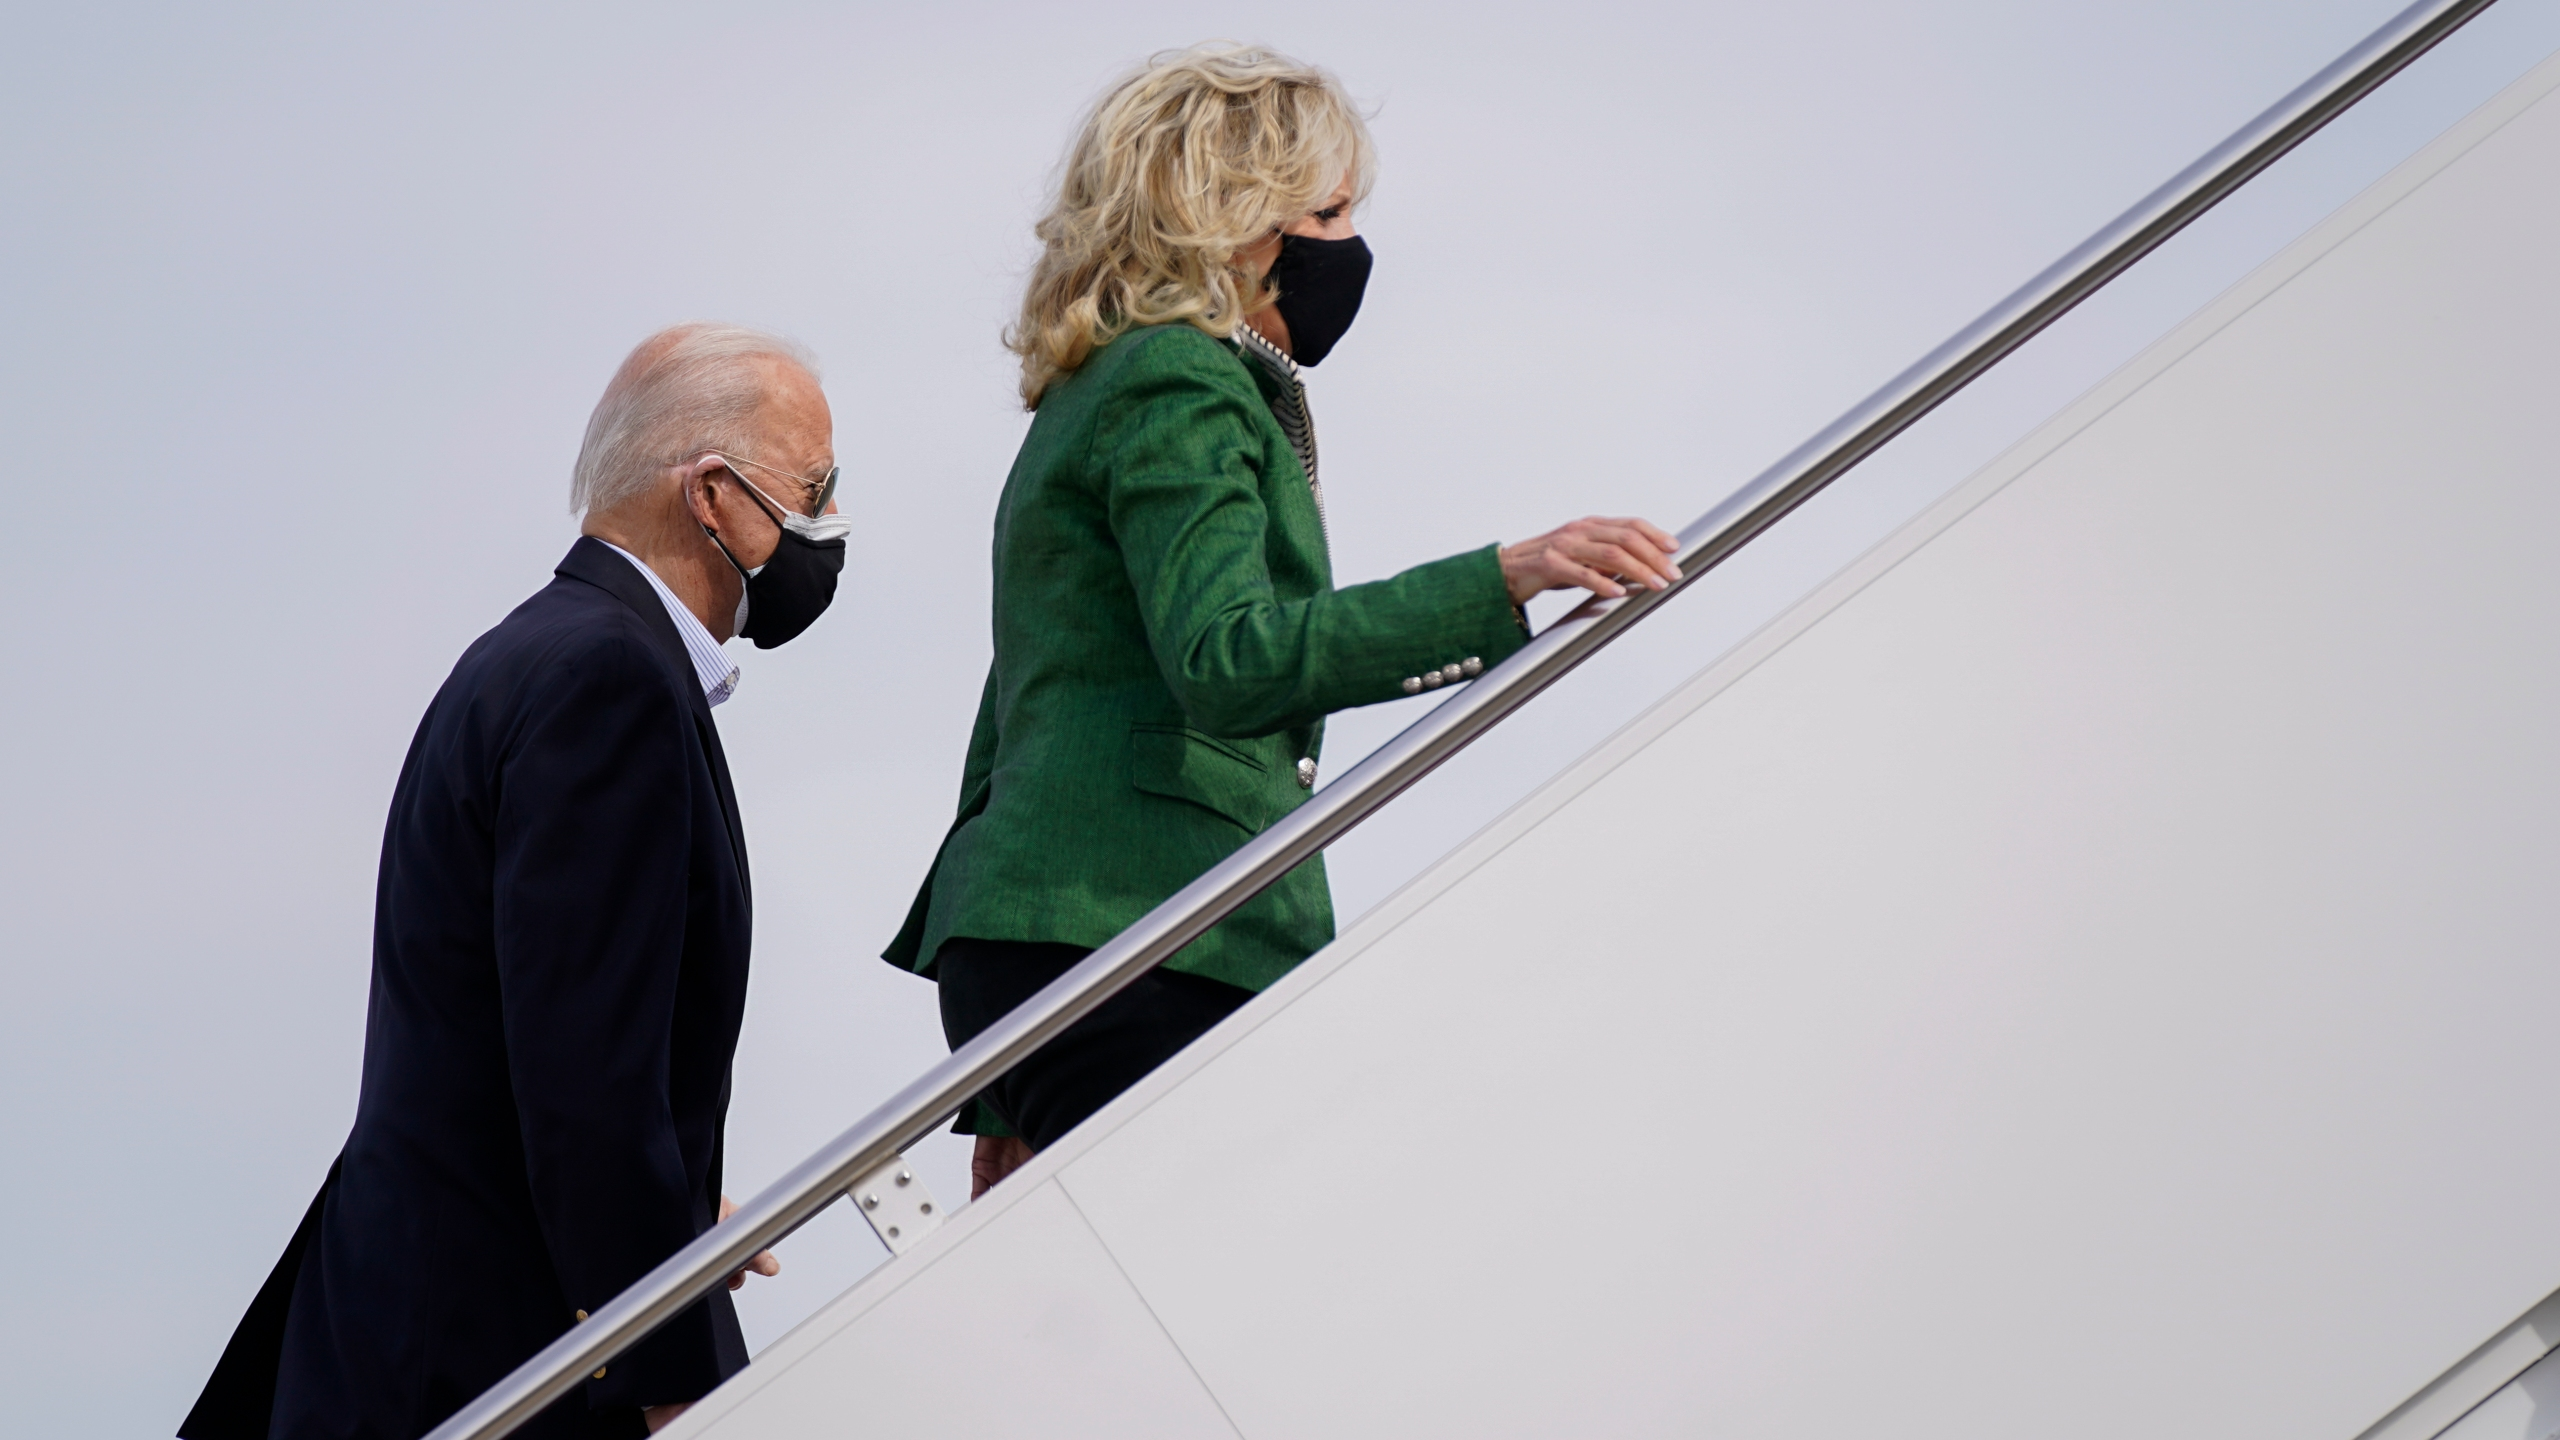 President Joe Biden and first lady Jill Biden board Air Force One at Andrews Air Force Base, Md., Friday, Feb. 26, 2021. They are en route to Houston to survey damage caused by severe winter weather and encourage people to get their coronavirus shots. (AP Photo/Patrick Semansky)